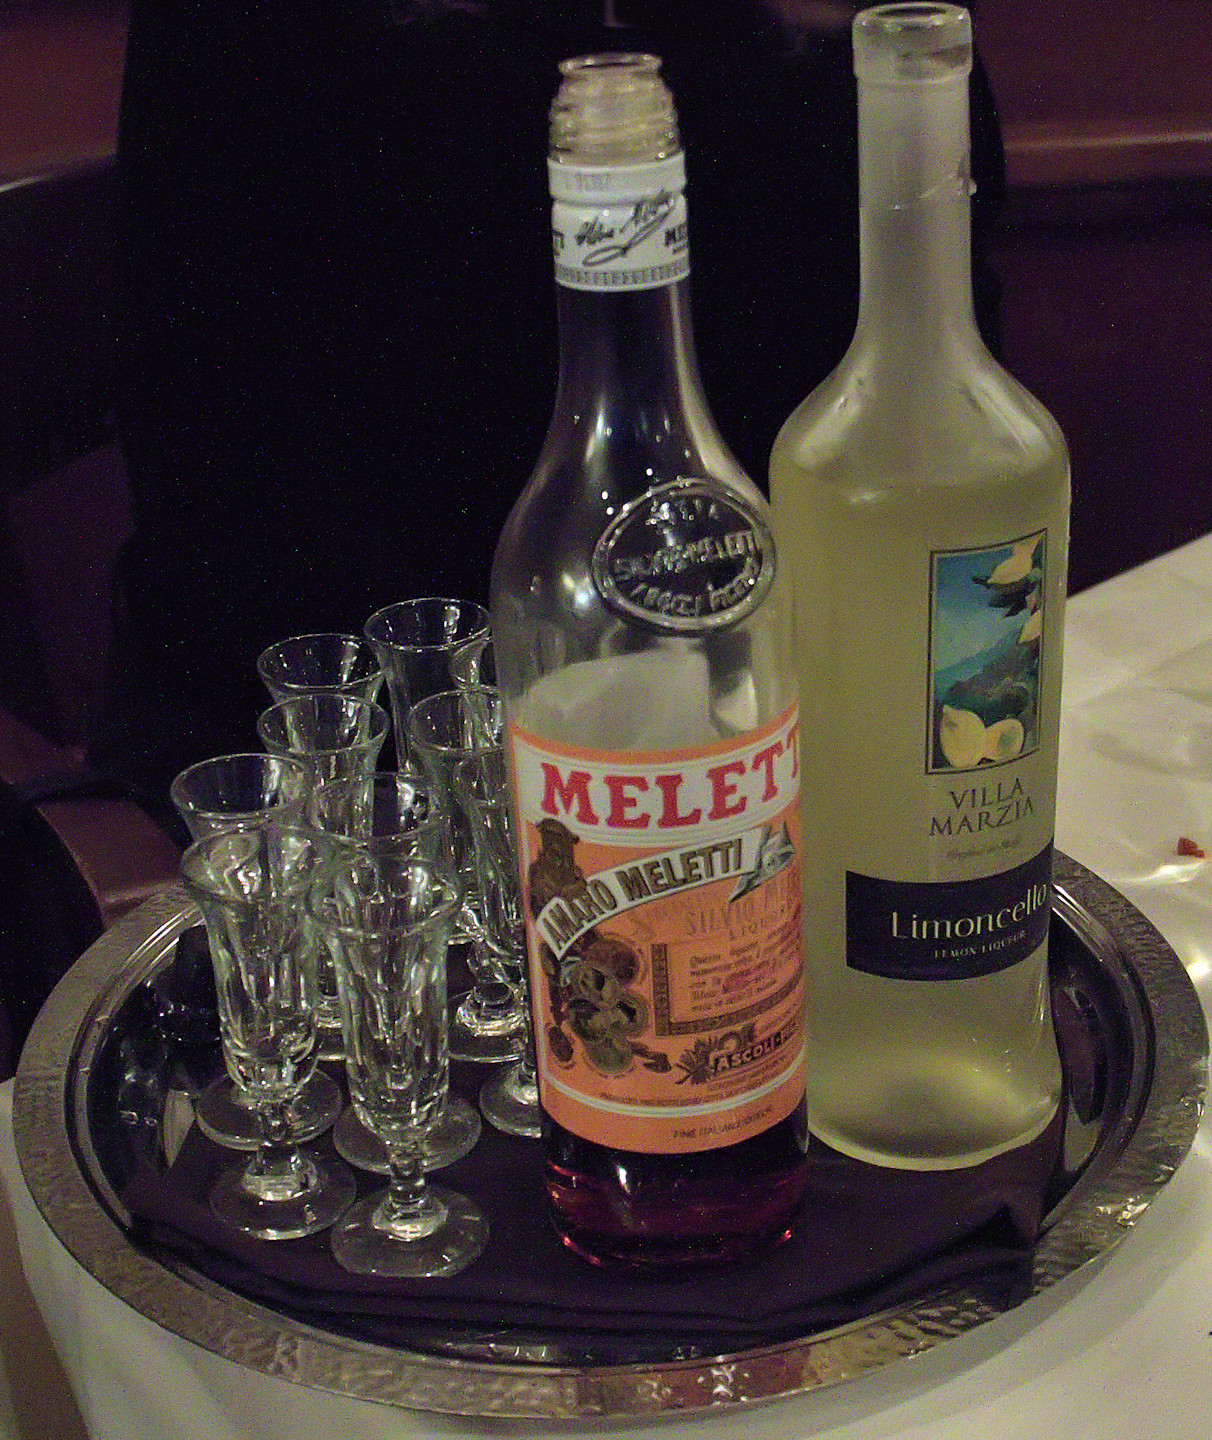 After dinner Amaro and Limoncello